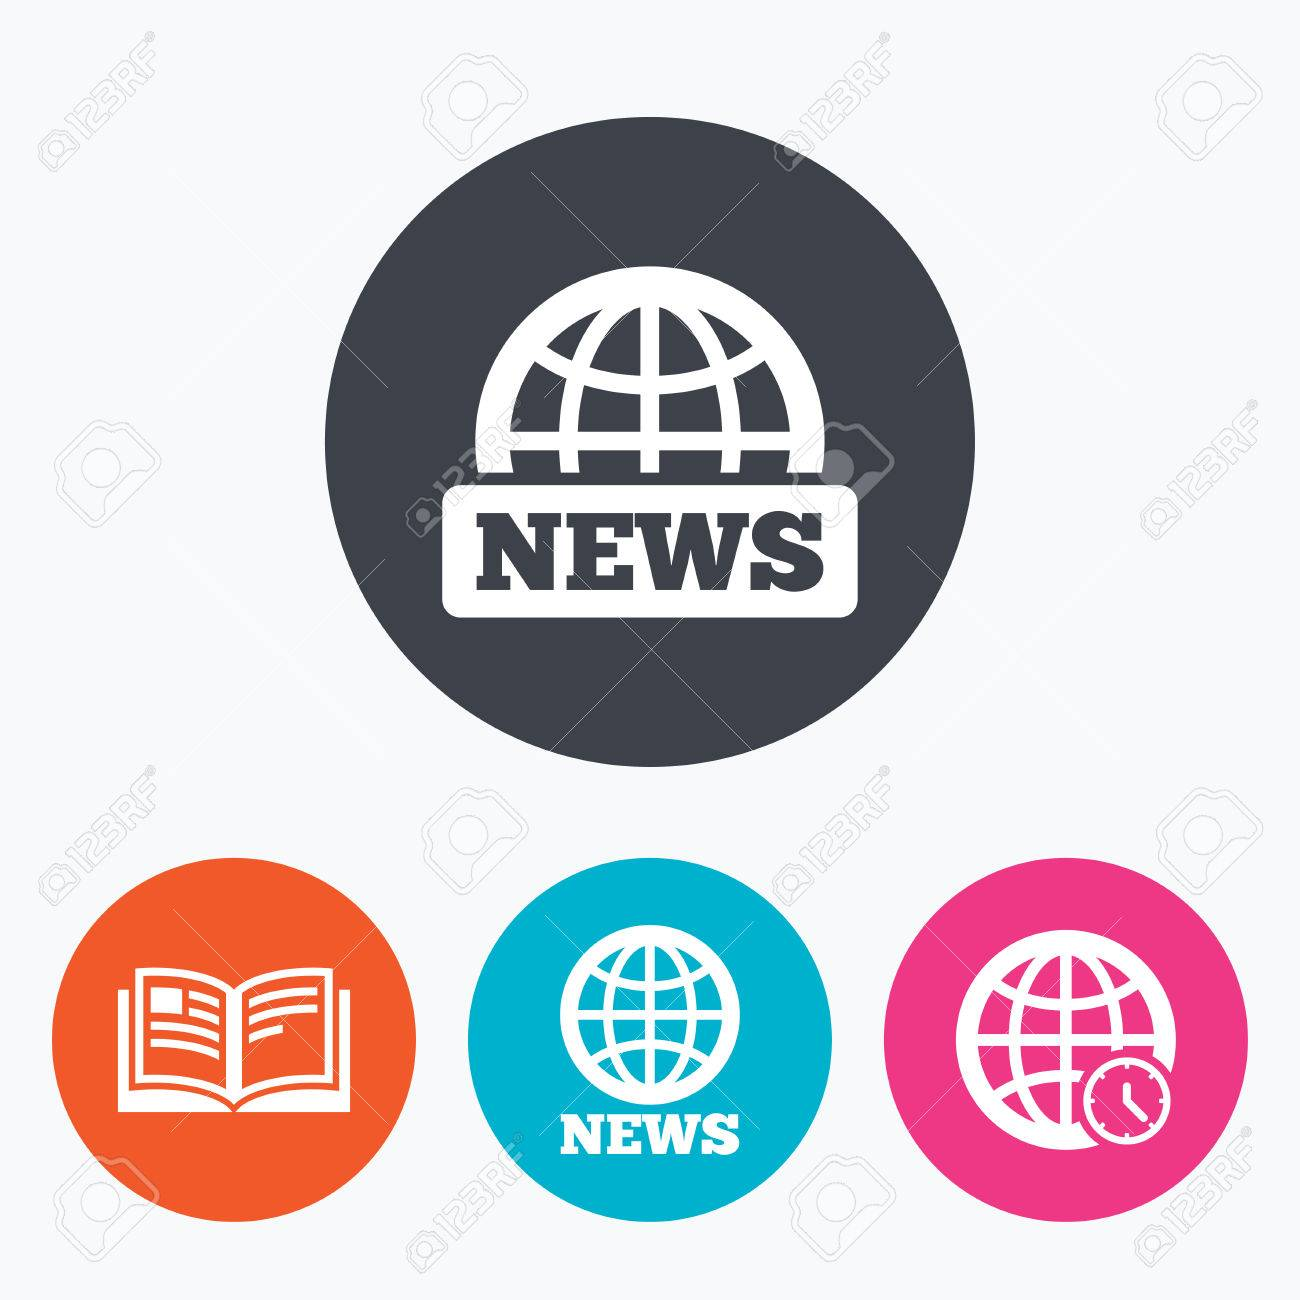 news icons world globe symbols open book sign education world globe symbols open book sign education literature circle flat